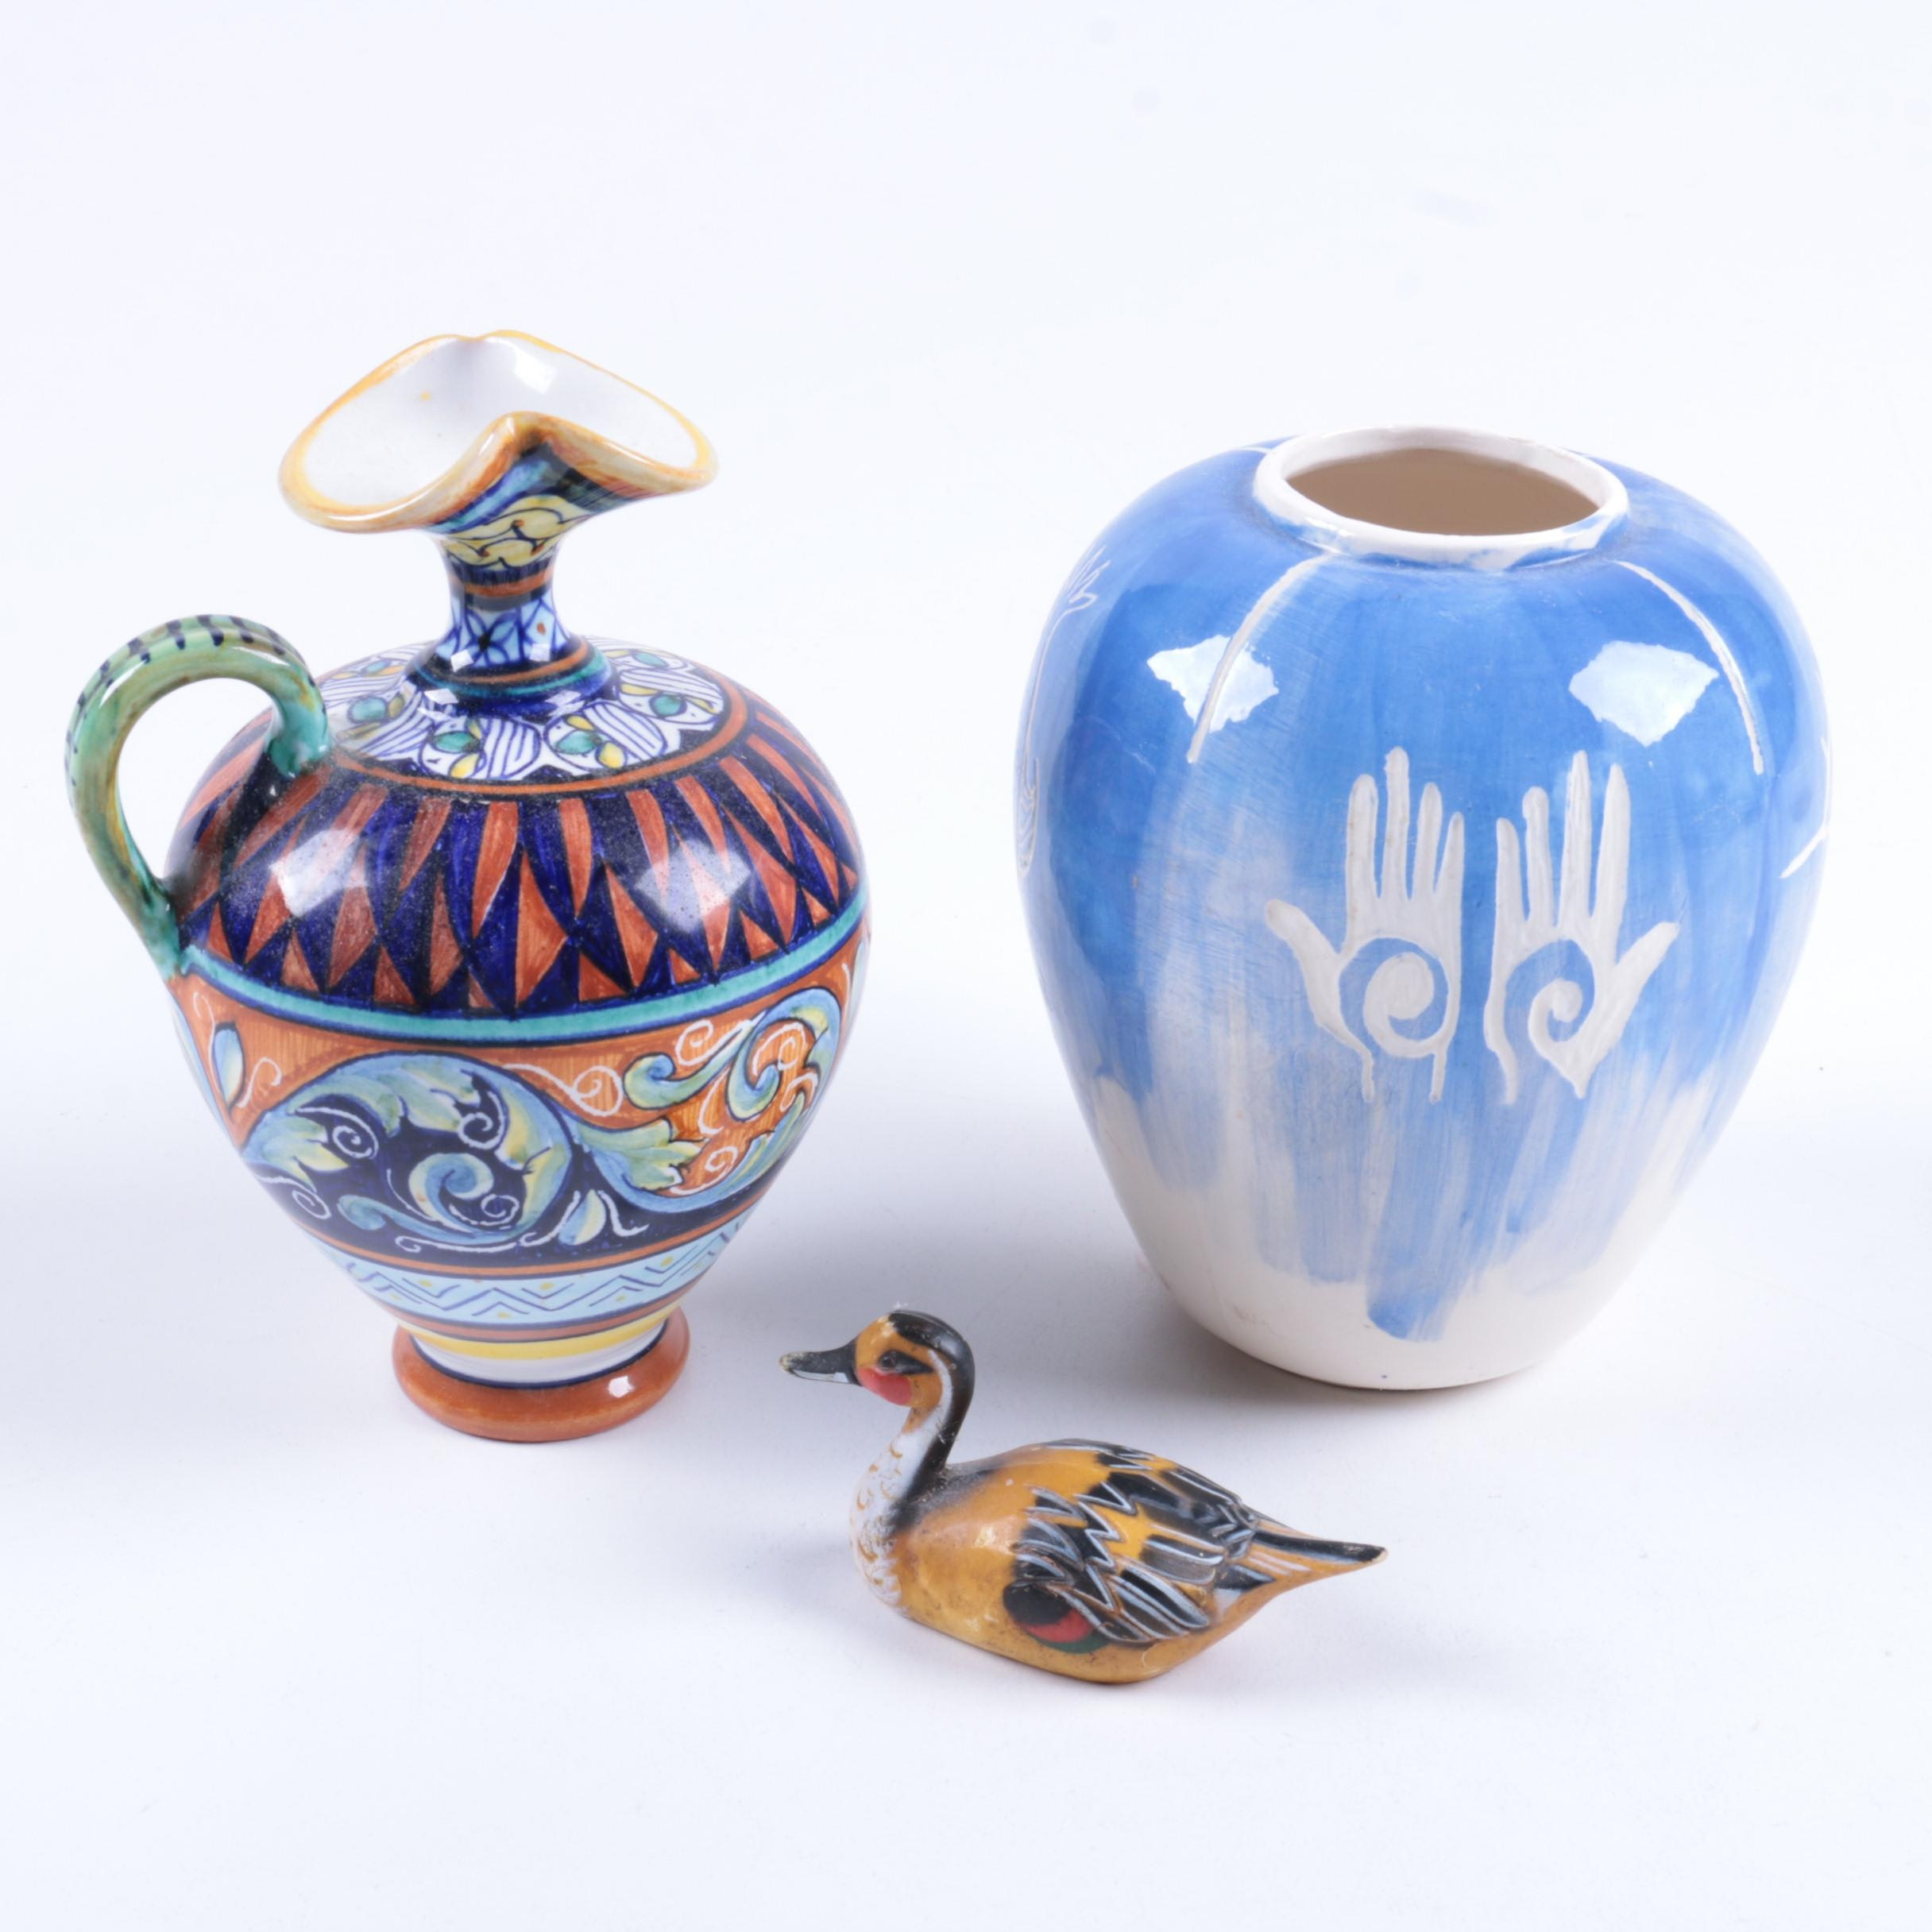 Ceramic Pitcher, Vase, and Resin Duck Figurine